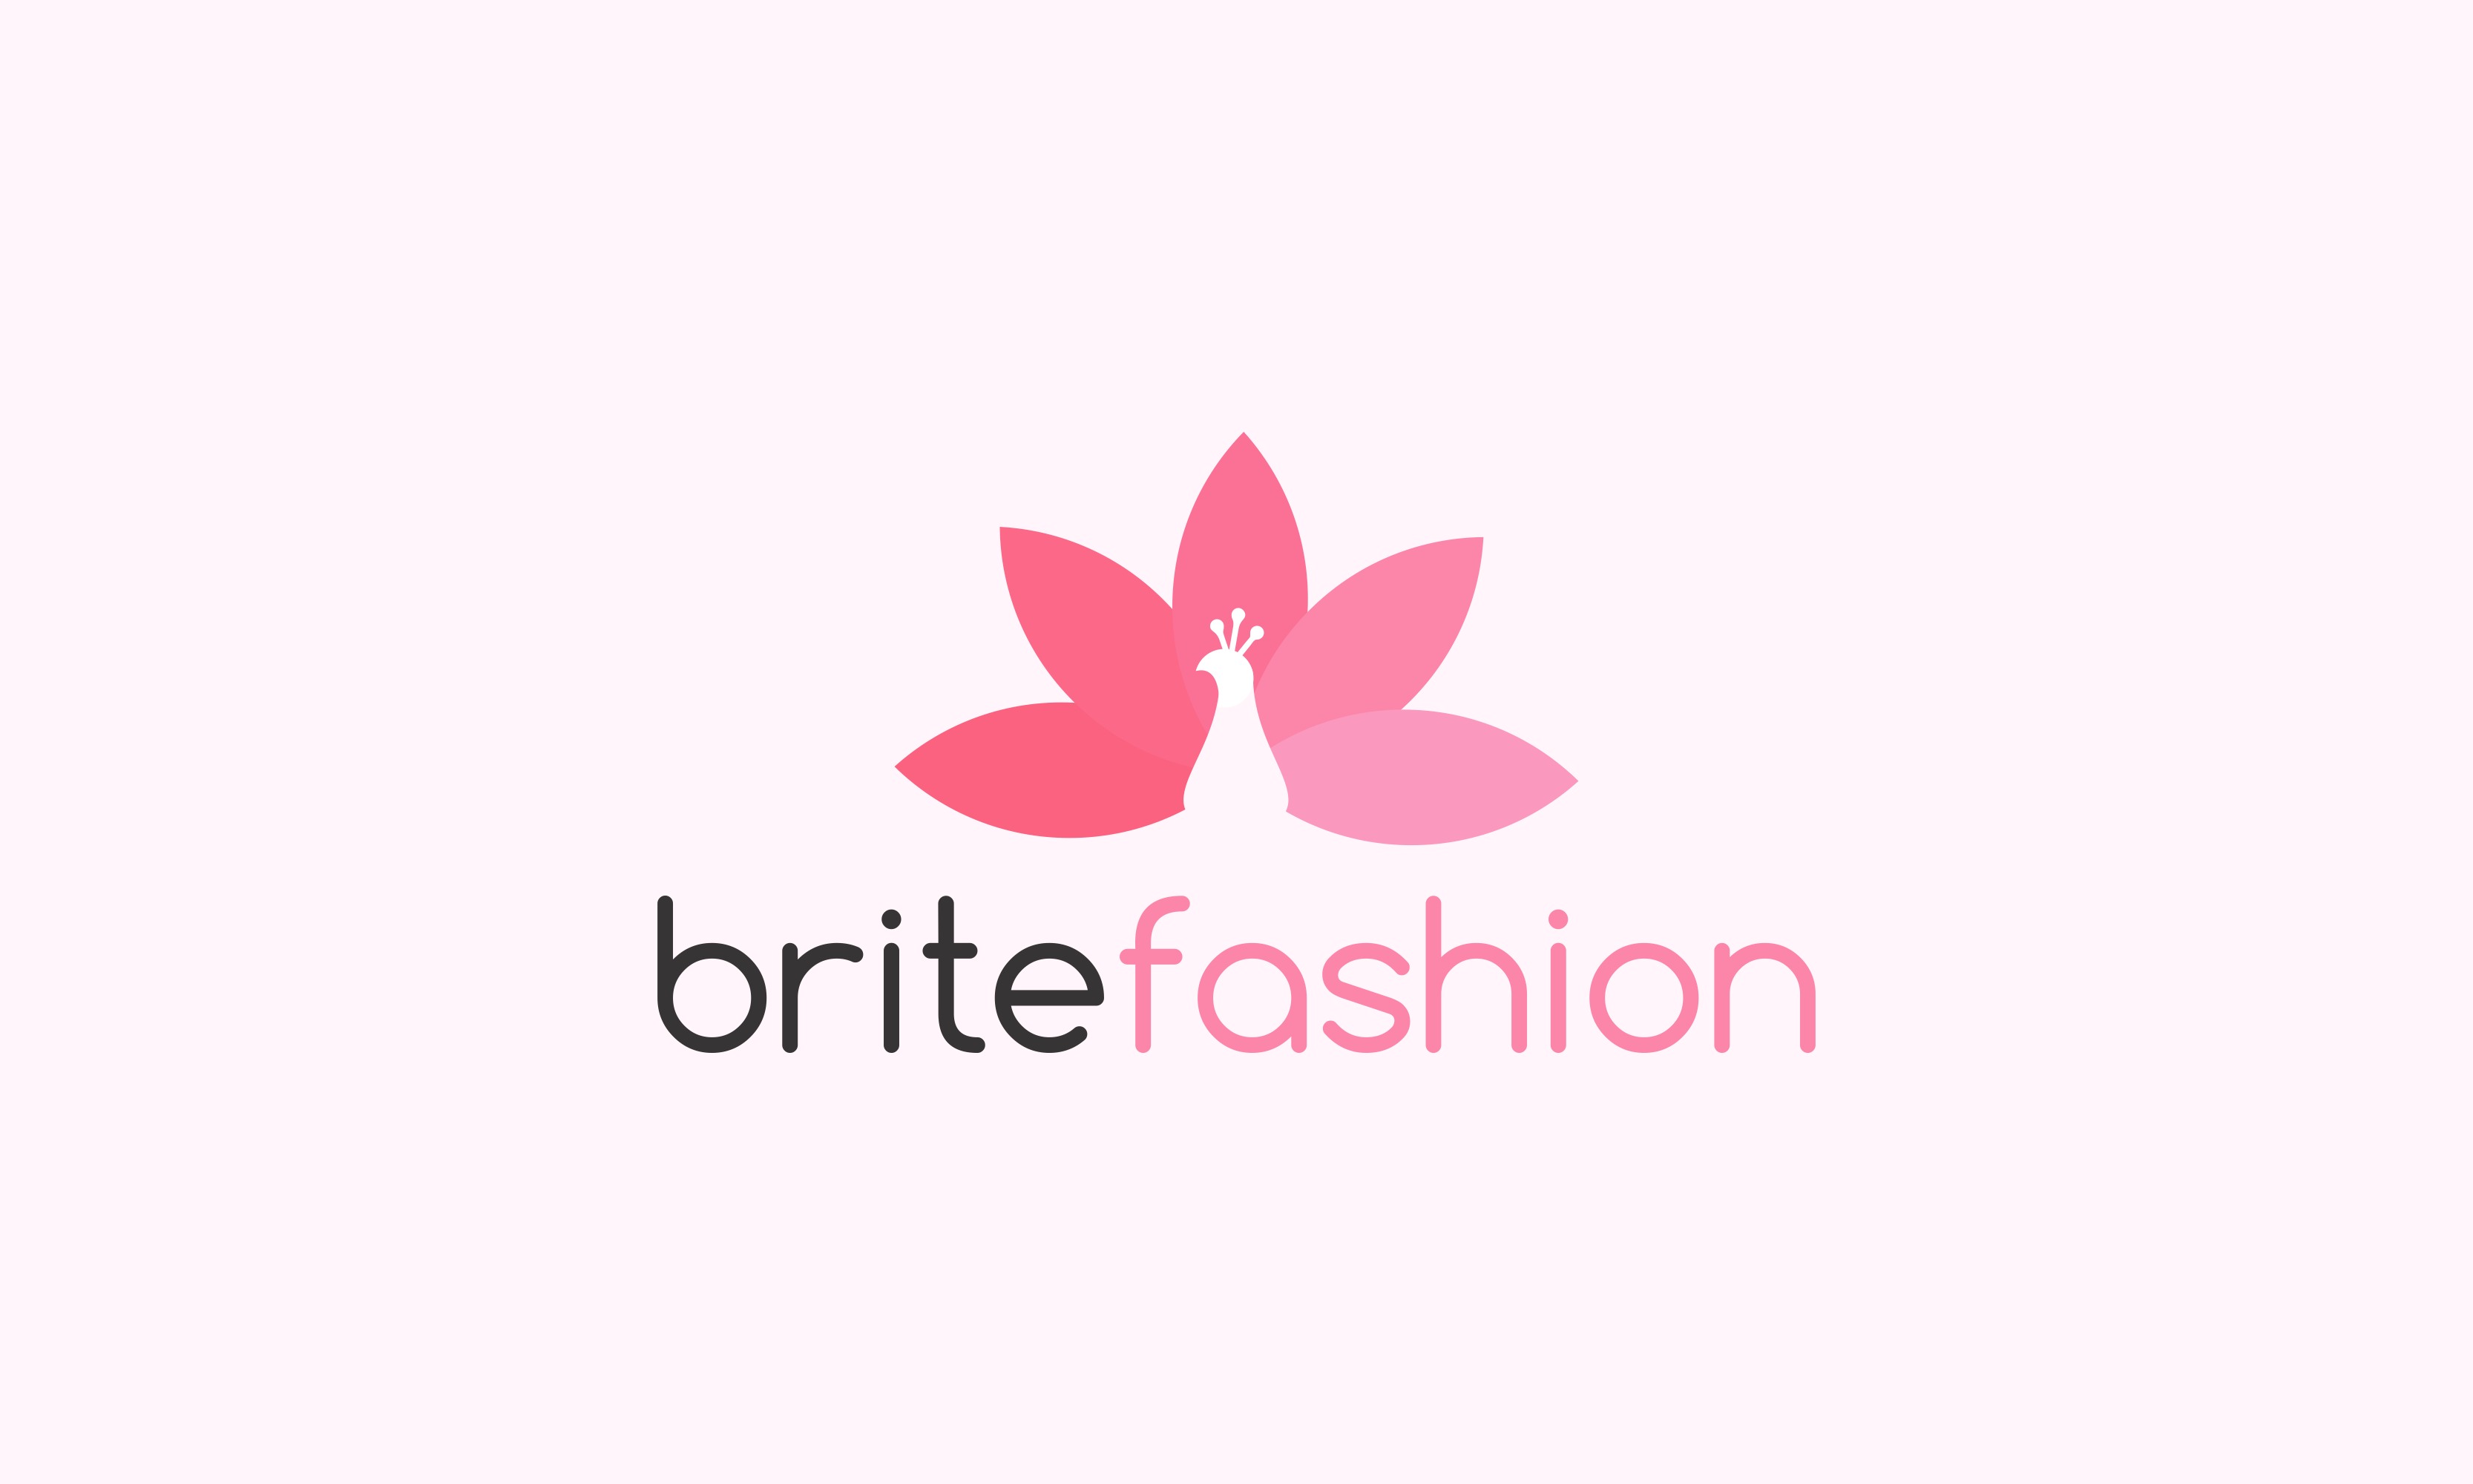 BriteFashion logo